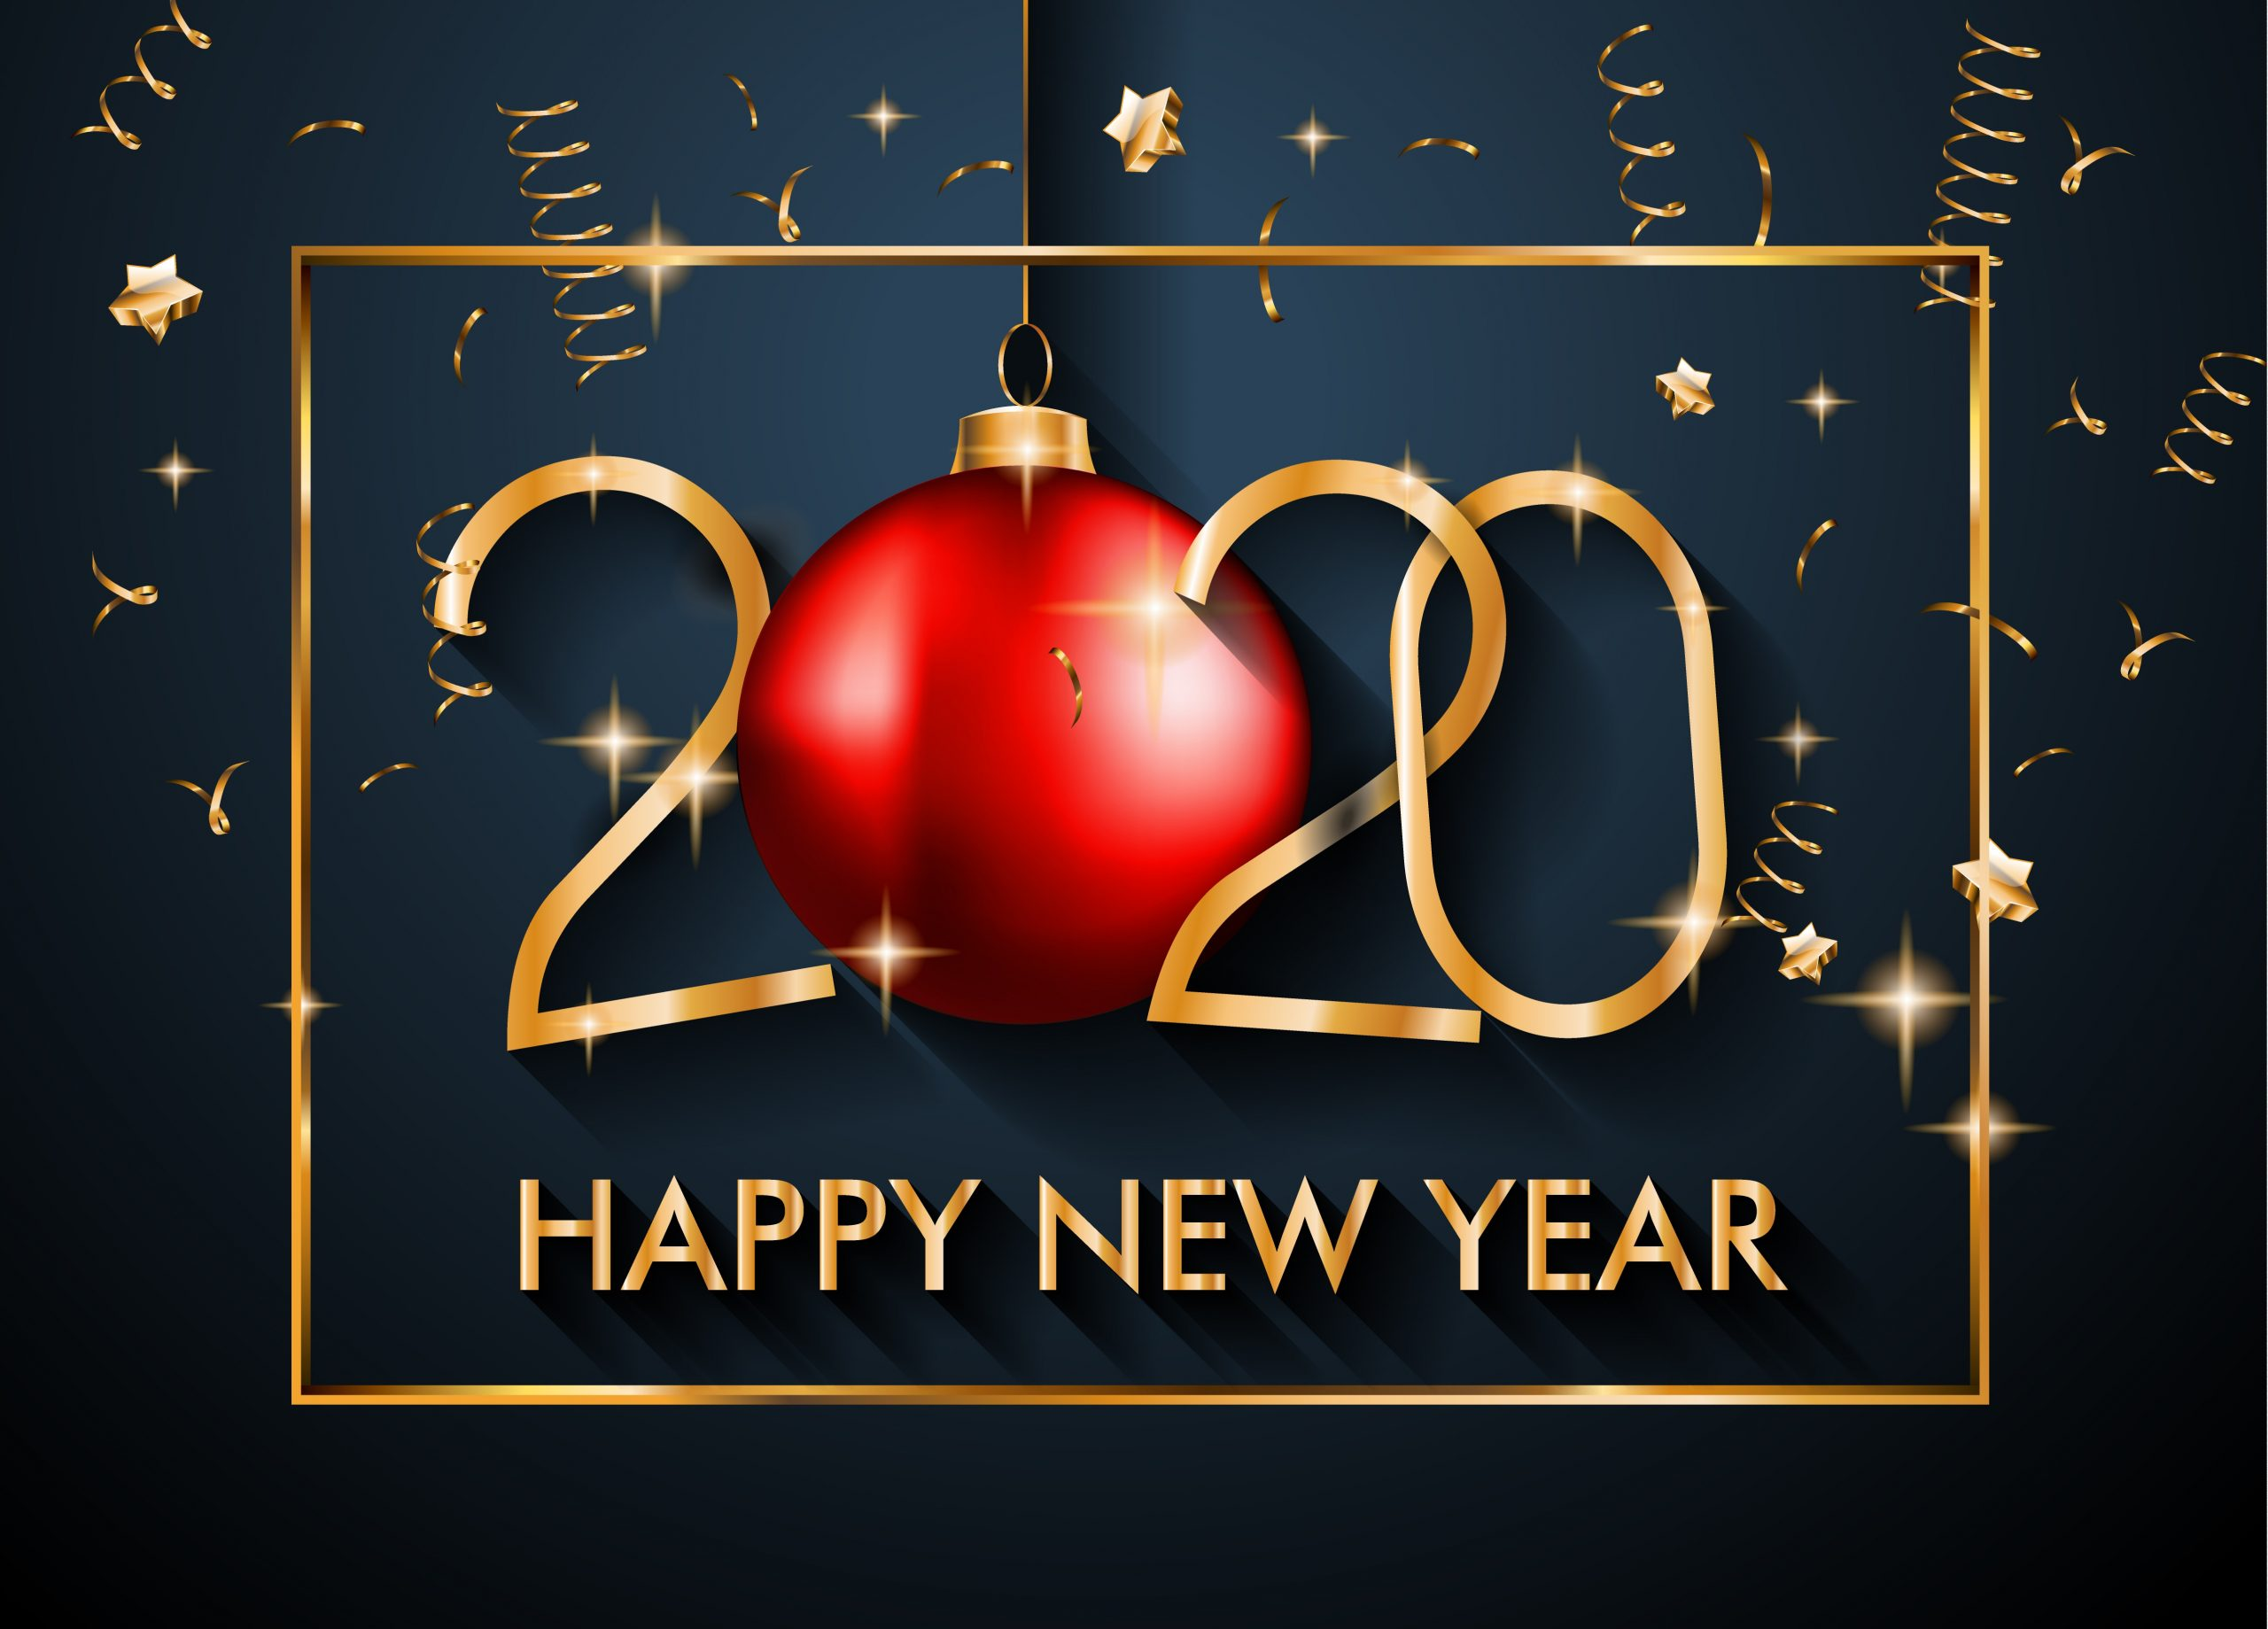 Best 4K Happy New Year 2020 Wallpapers & Images | TechBeasts